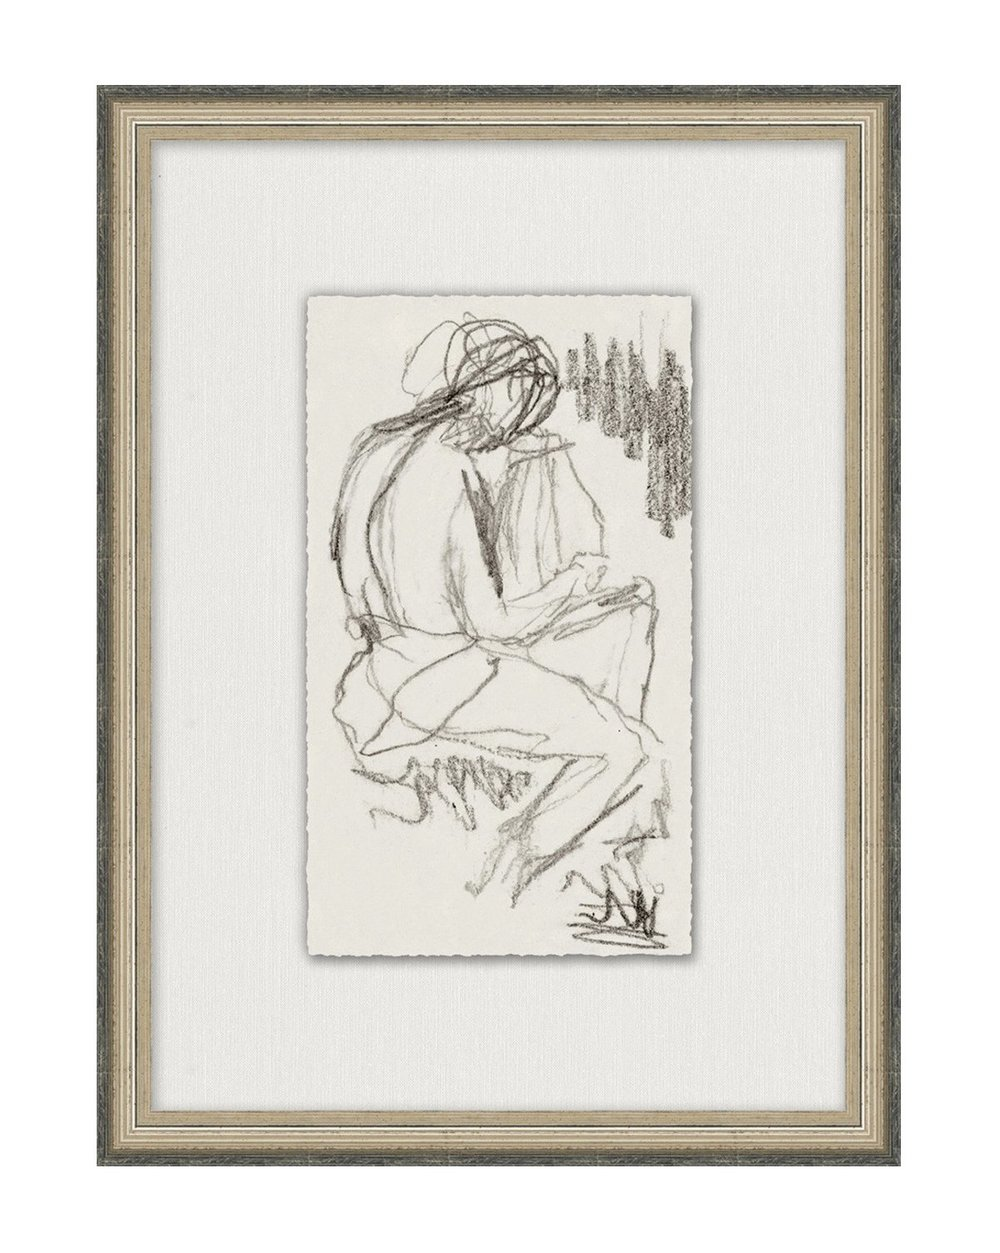 Framed figure sketch from McGee&Co .